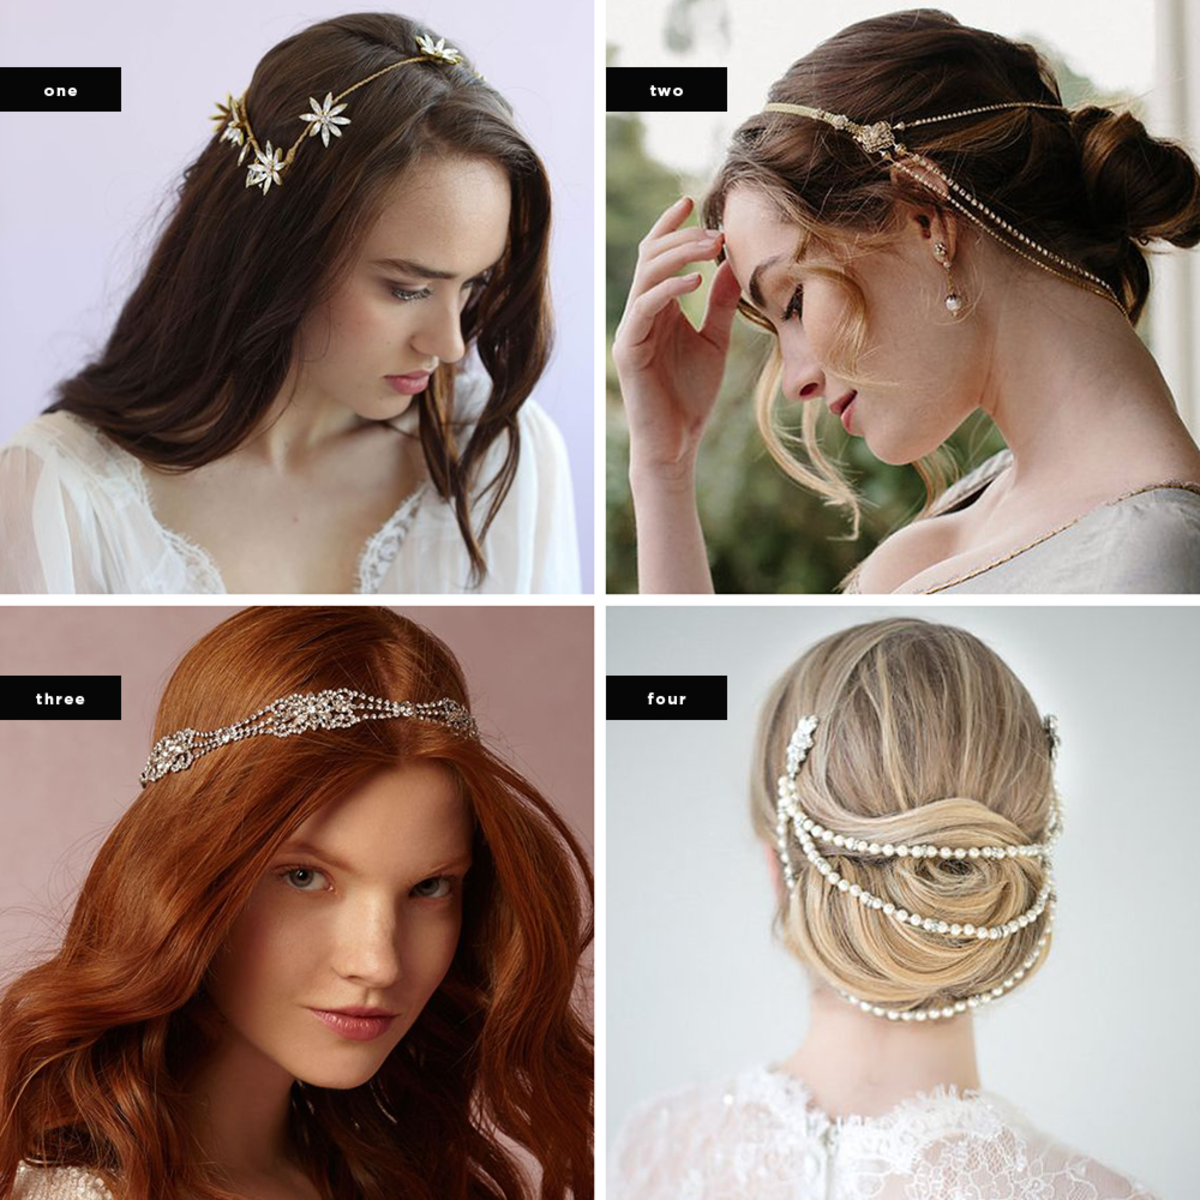 1. Twigs & Honey, $575 / 2. Etsy, $390 /3. BHLDN, $200 / 4. Etsy, $59